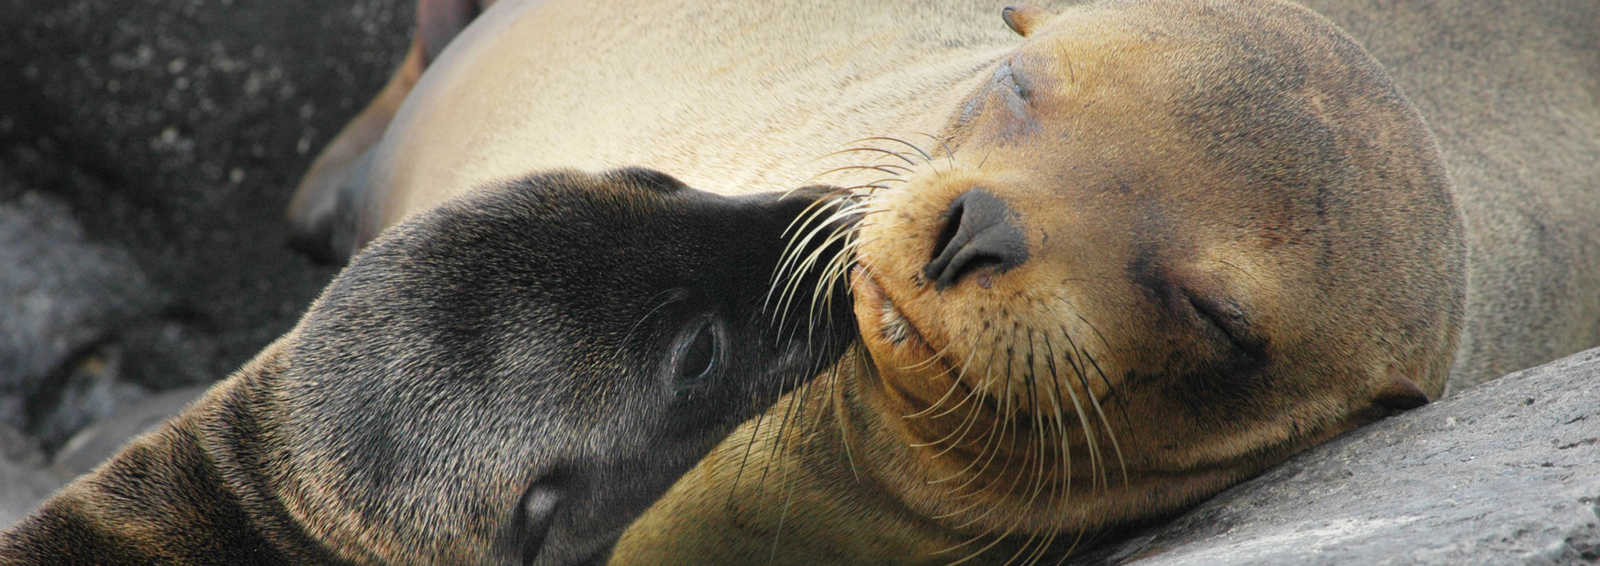 Sea lion mother and pup, Galapagos Islands